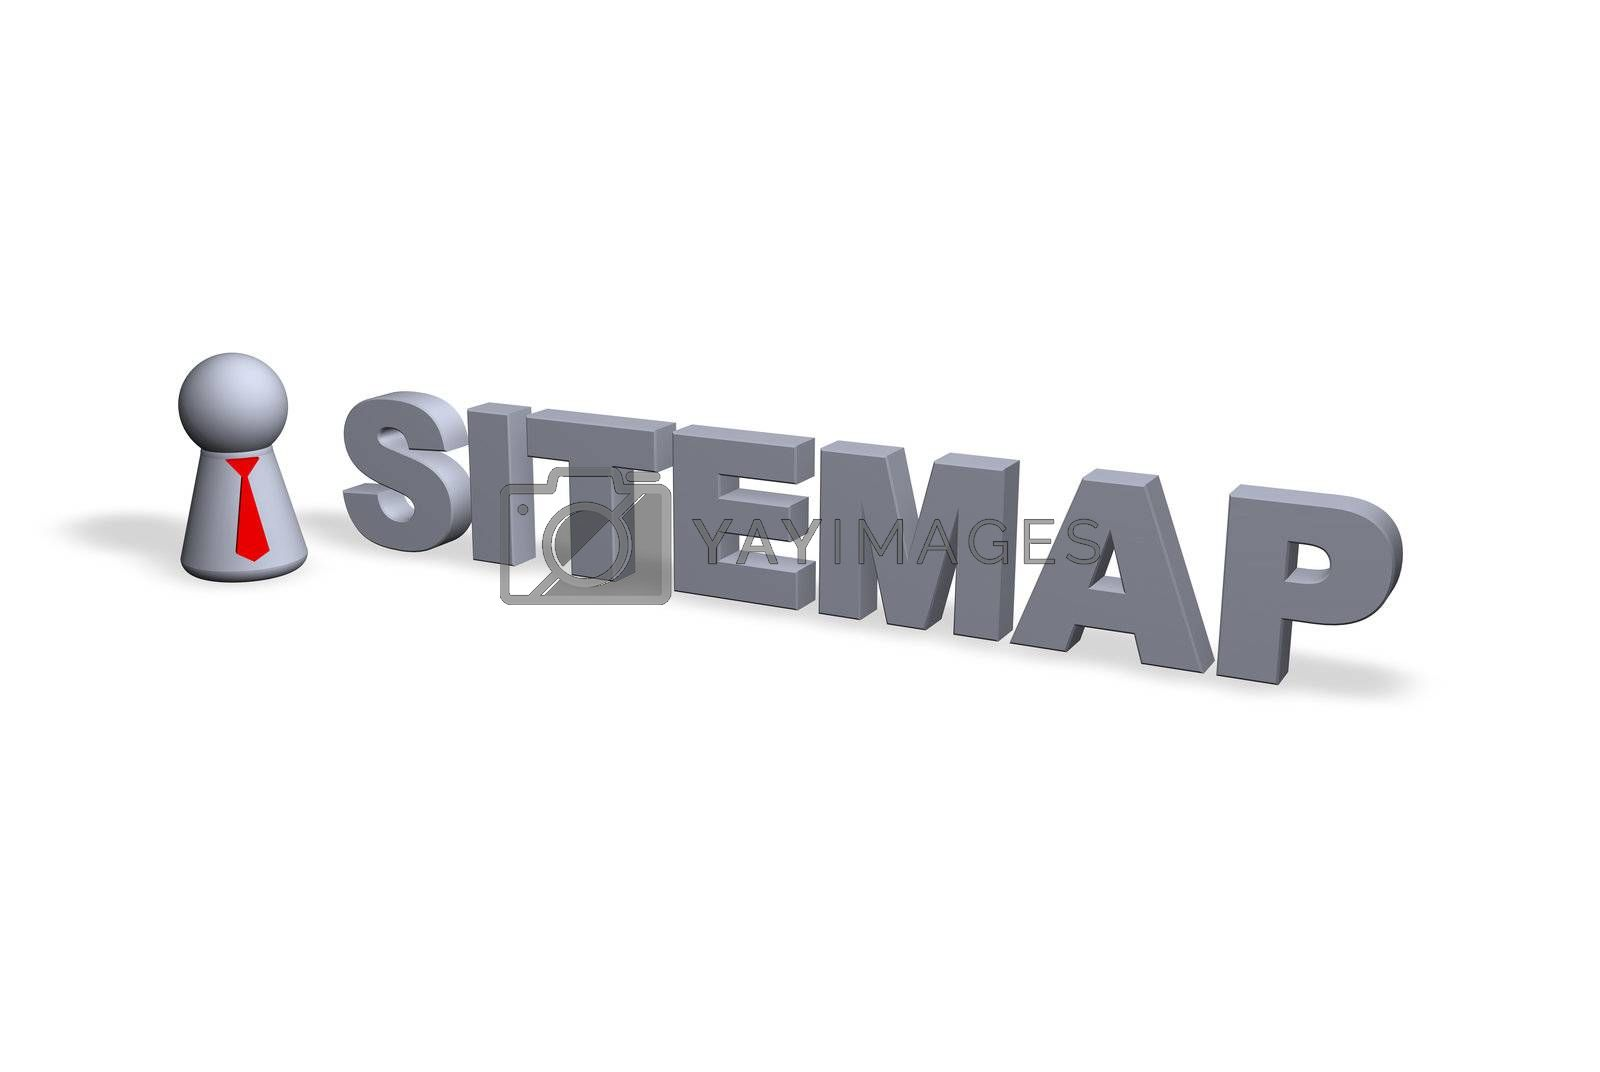 sitemap text in 3d and play figure with red tie